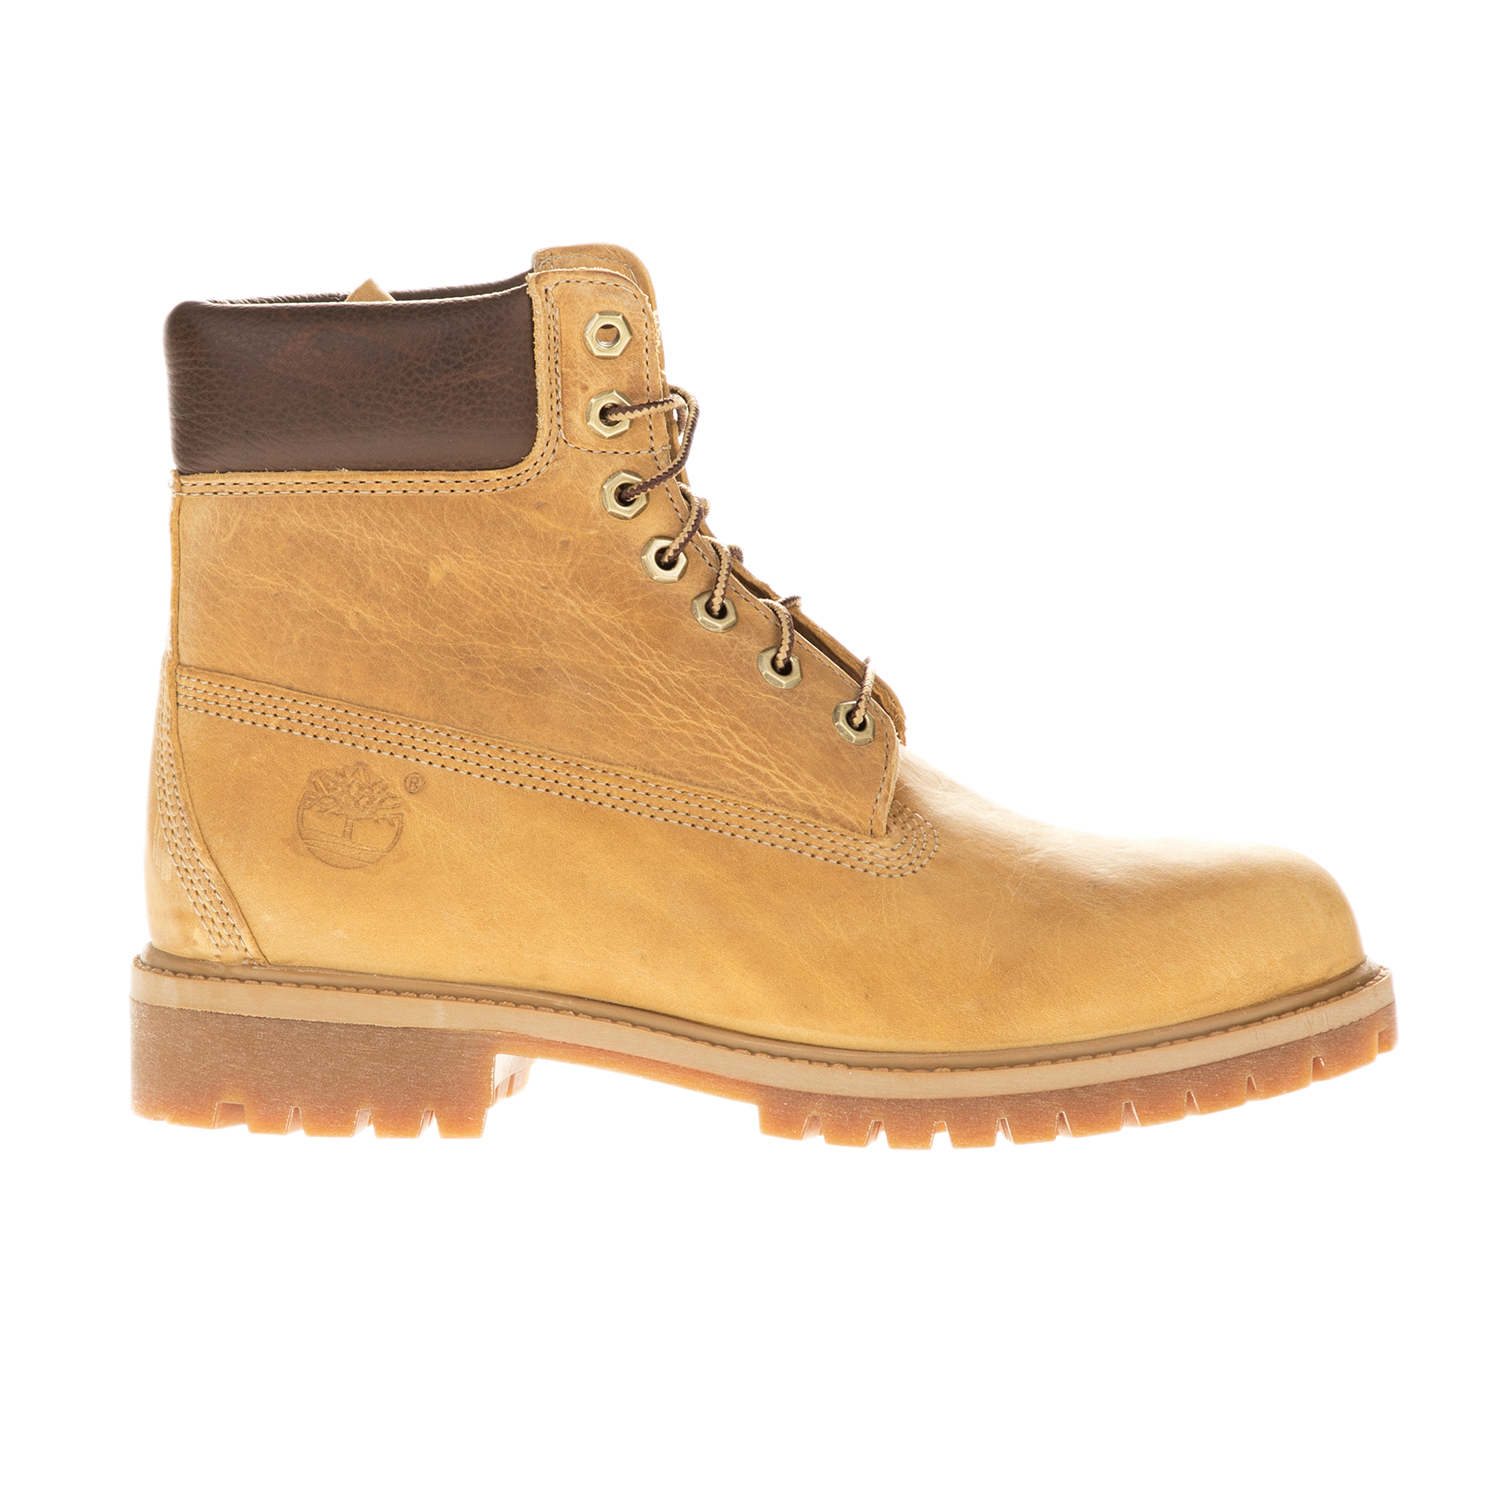 4d58da3b5f5c TIMBERLAND – Ανδρικά μποτάκια TIMBERLAND 6 IN BRADSTREET καφέ · TIMBERLAND  – Ανδρικά μποτάκια TIMBERLAND (1) CLASSIC 6IN κίτρινα